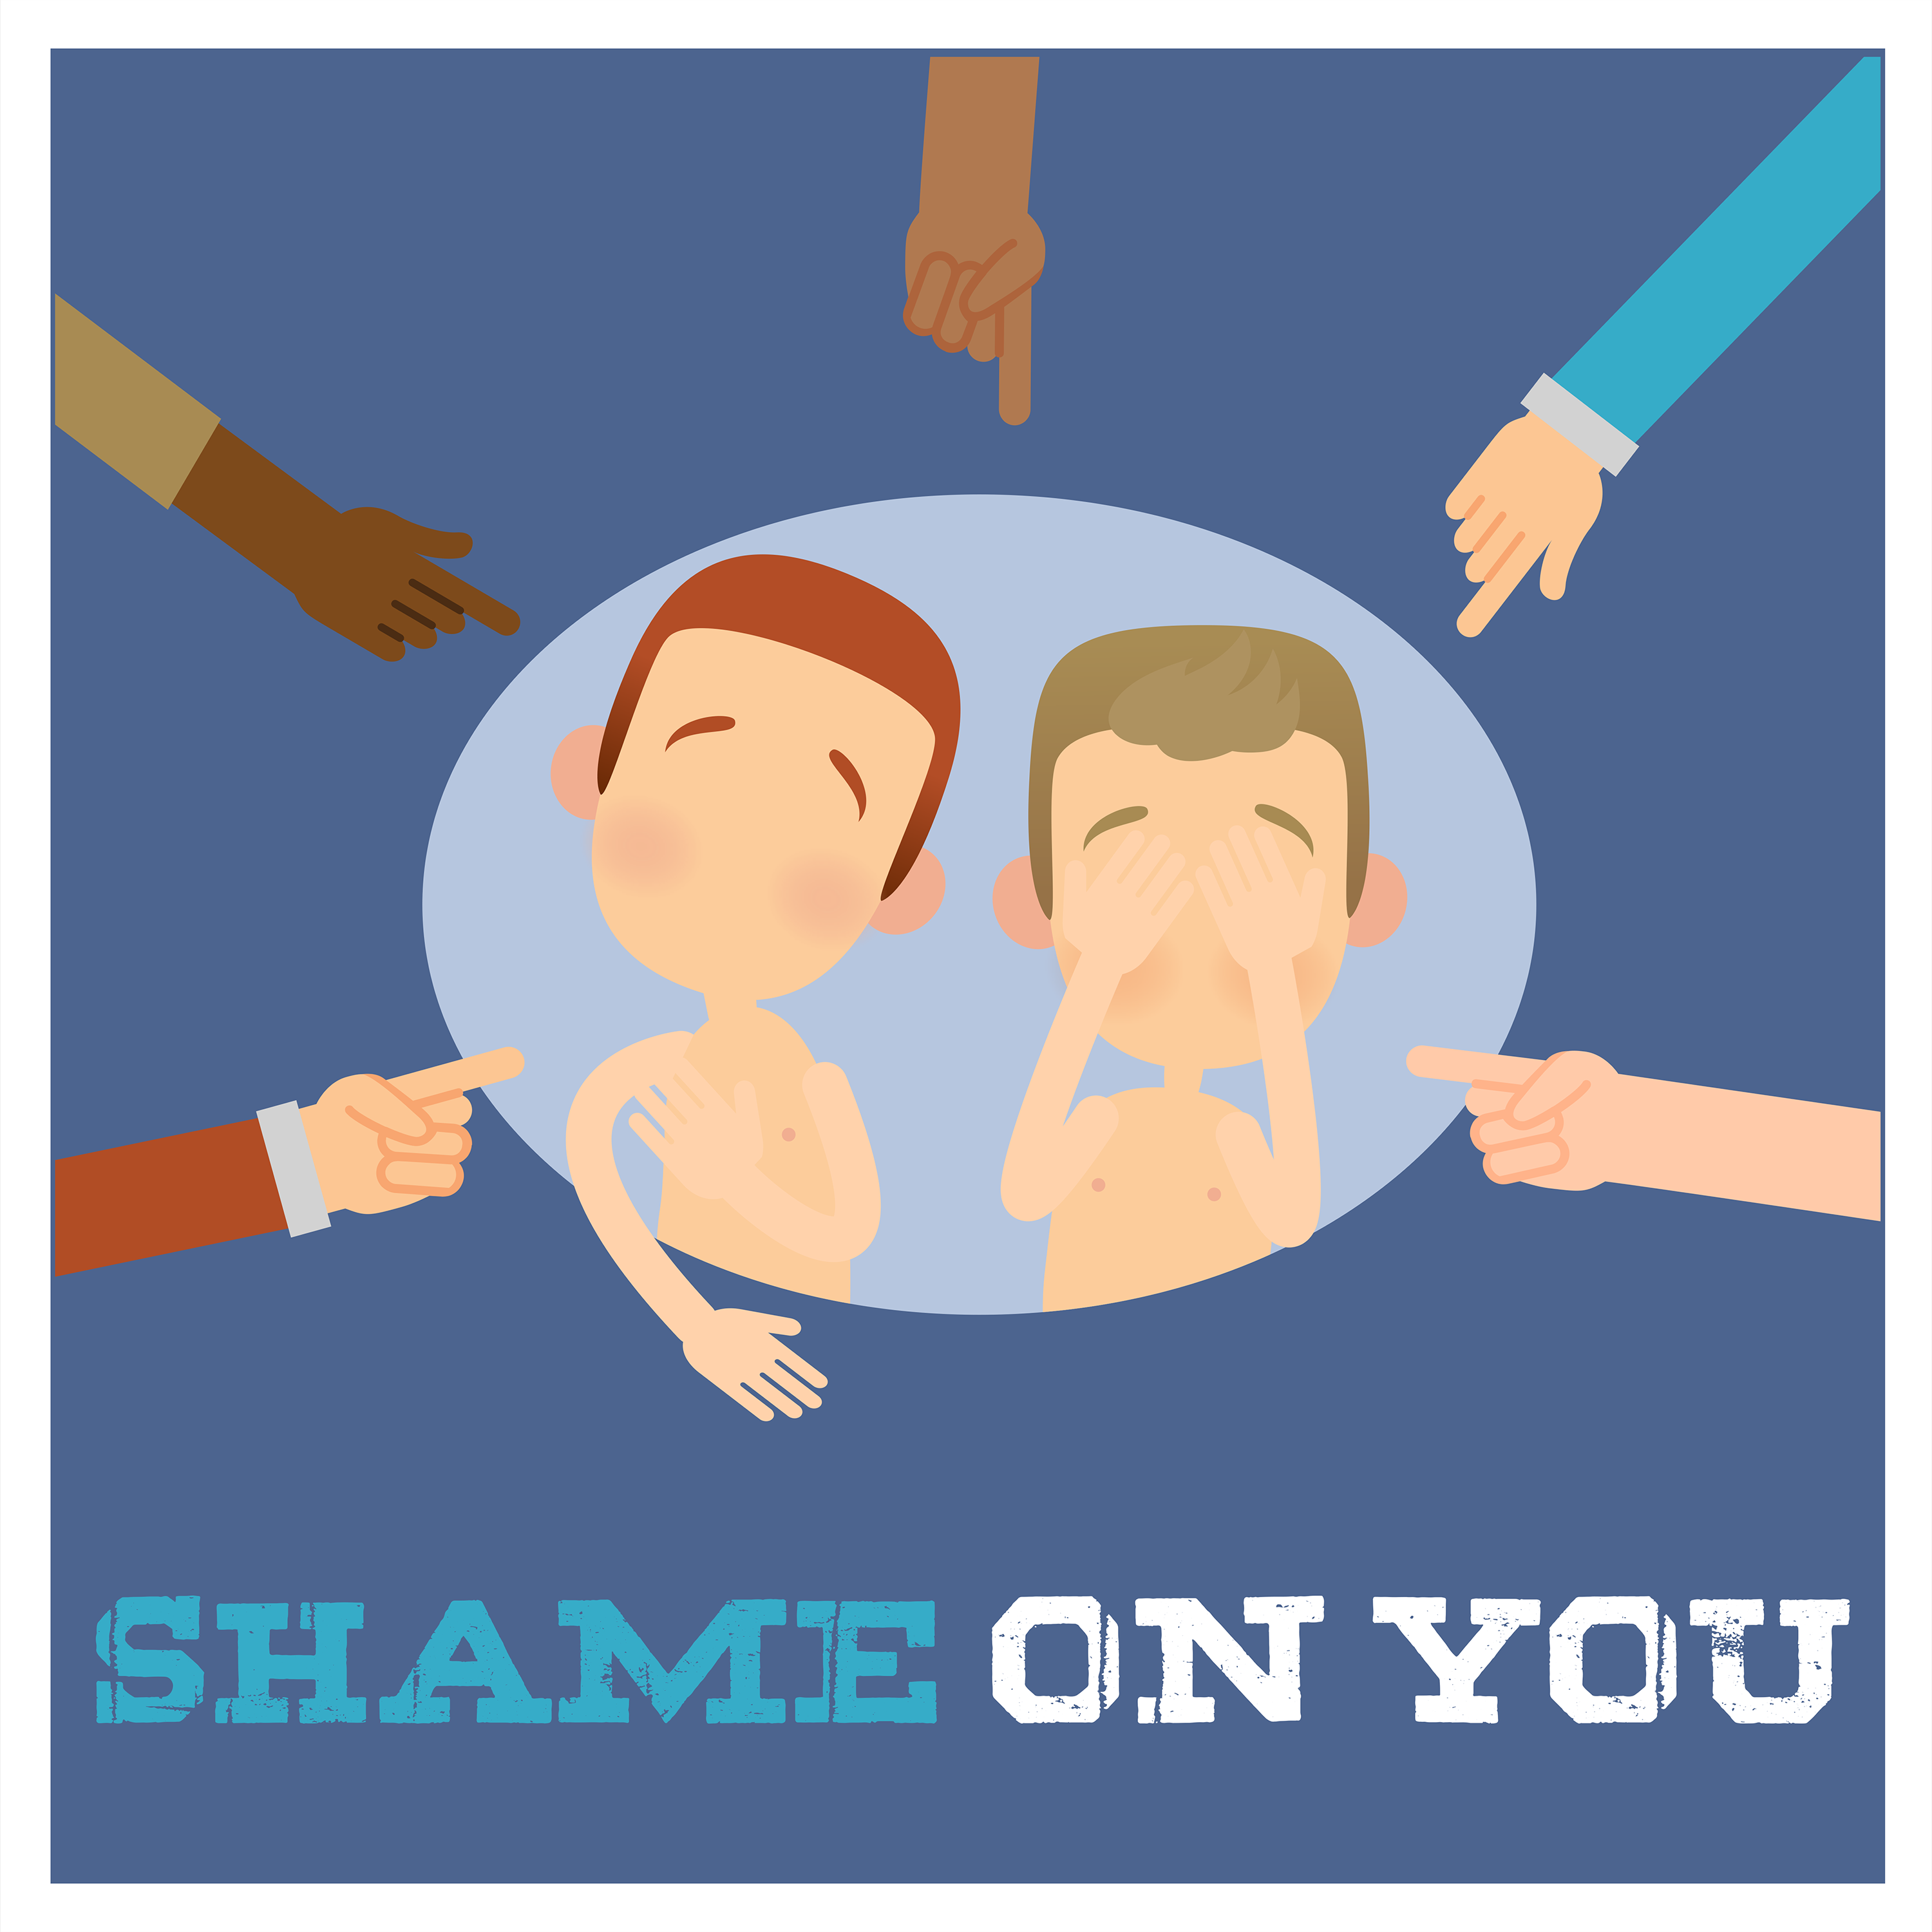 Was That A Date? Shame On You podcast